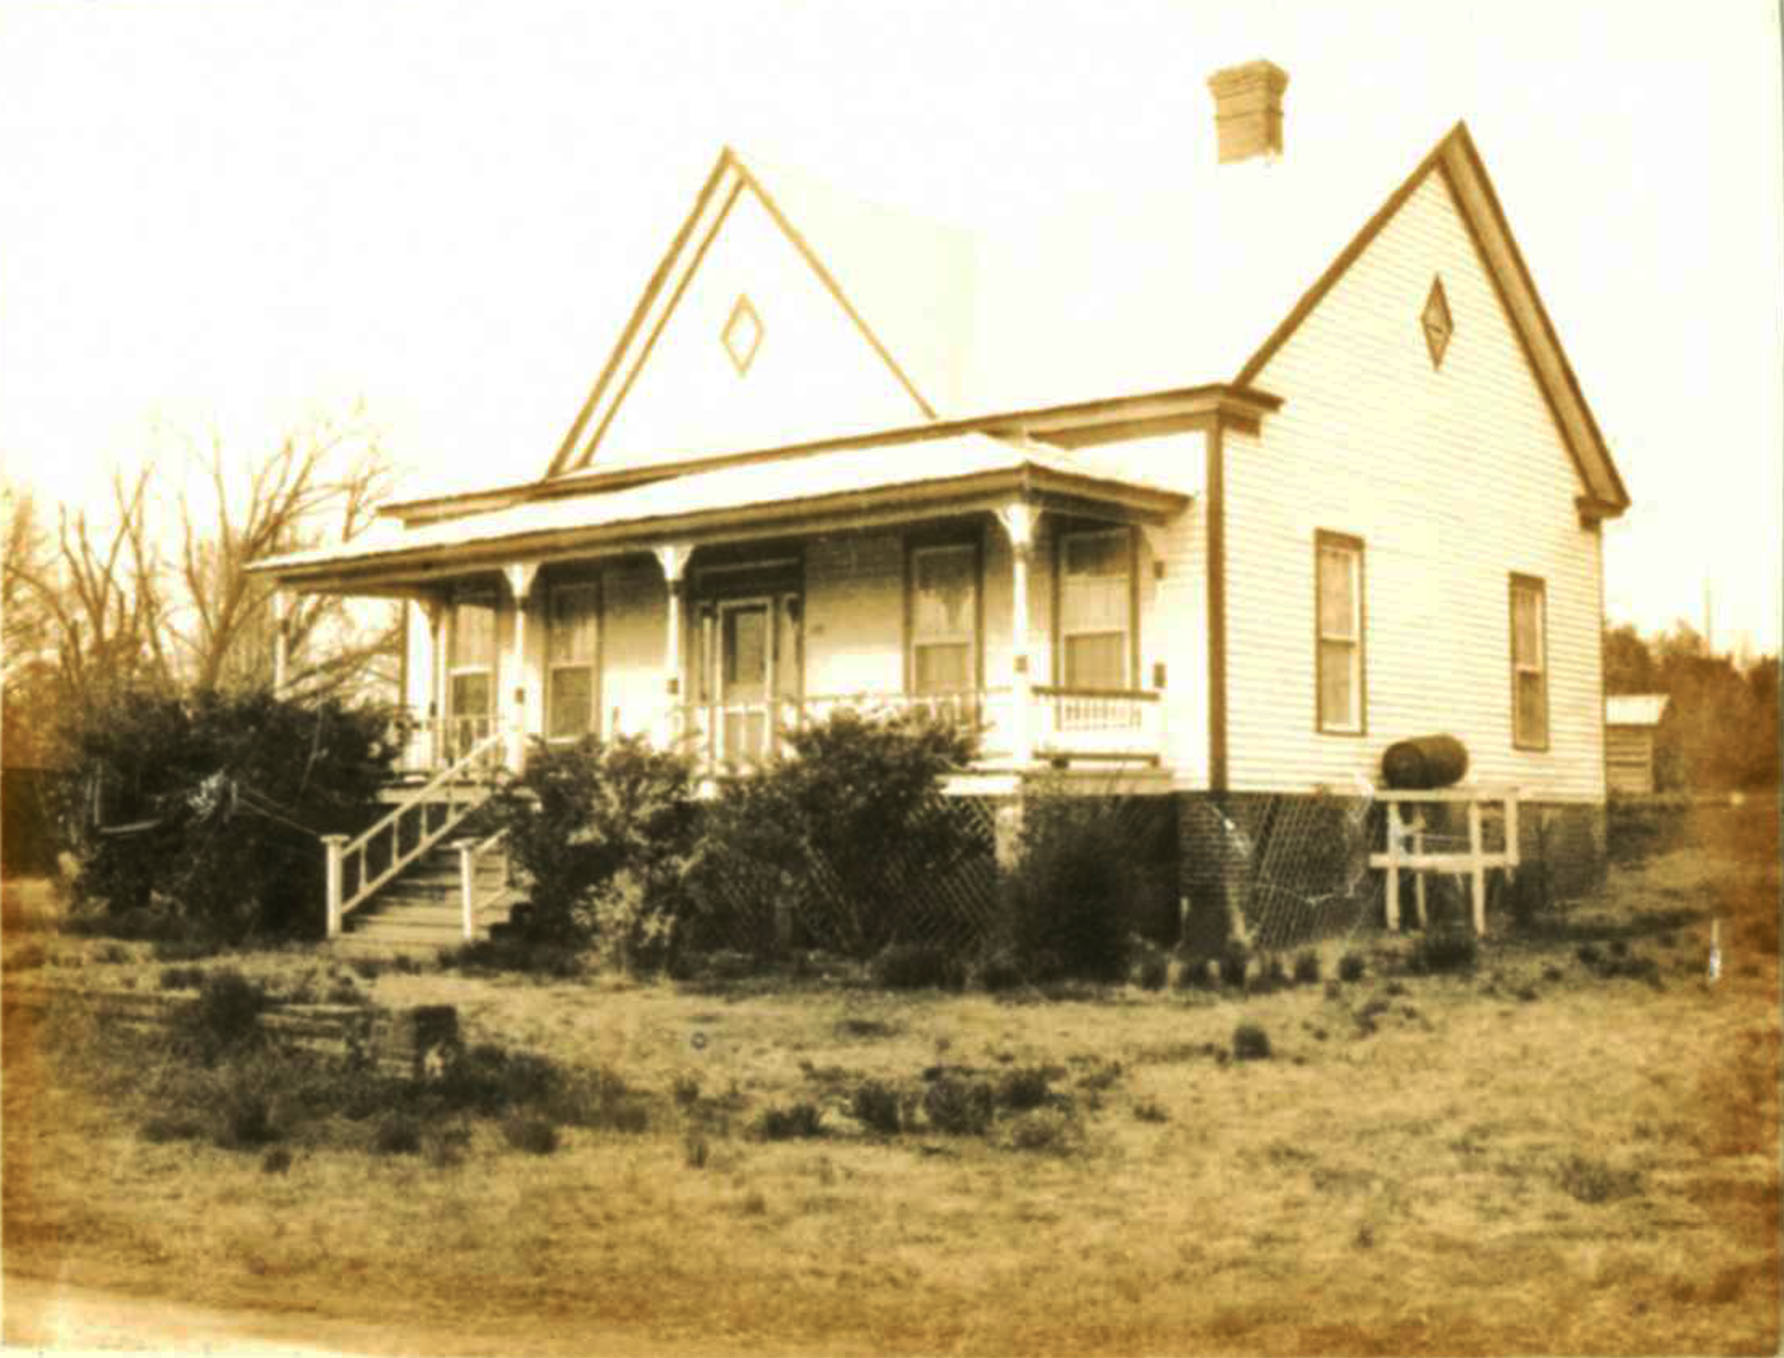 John Allen Hagood House:  Source: S.C. Dept. of Archives and History.